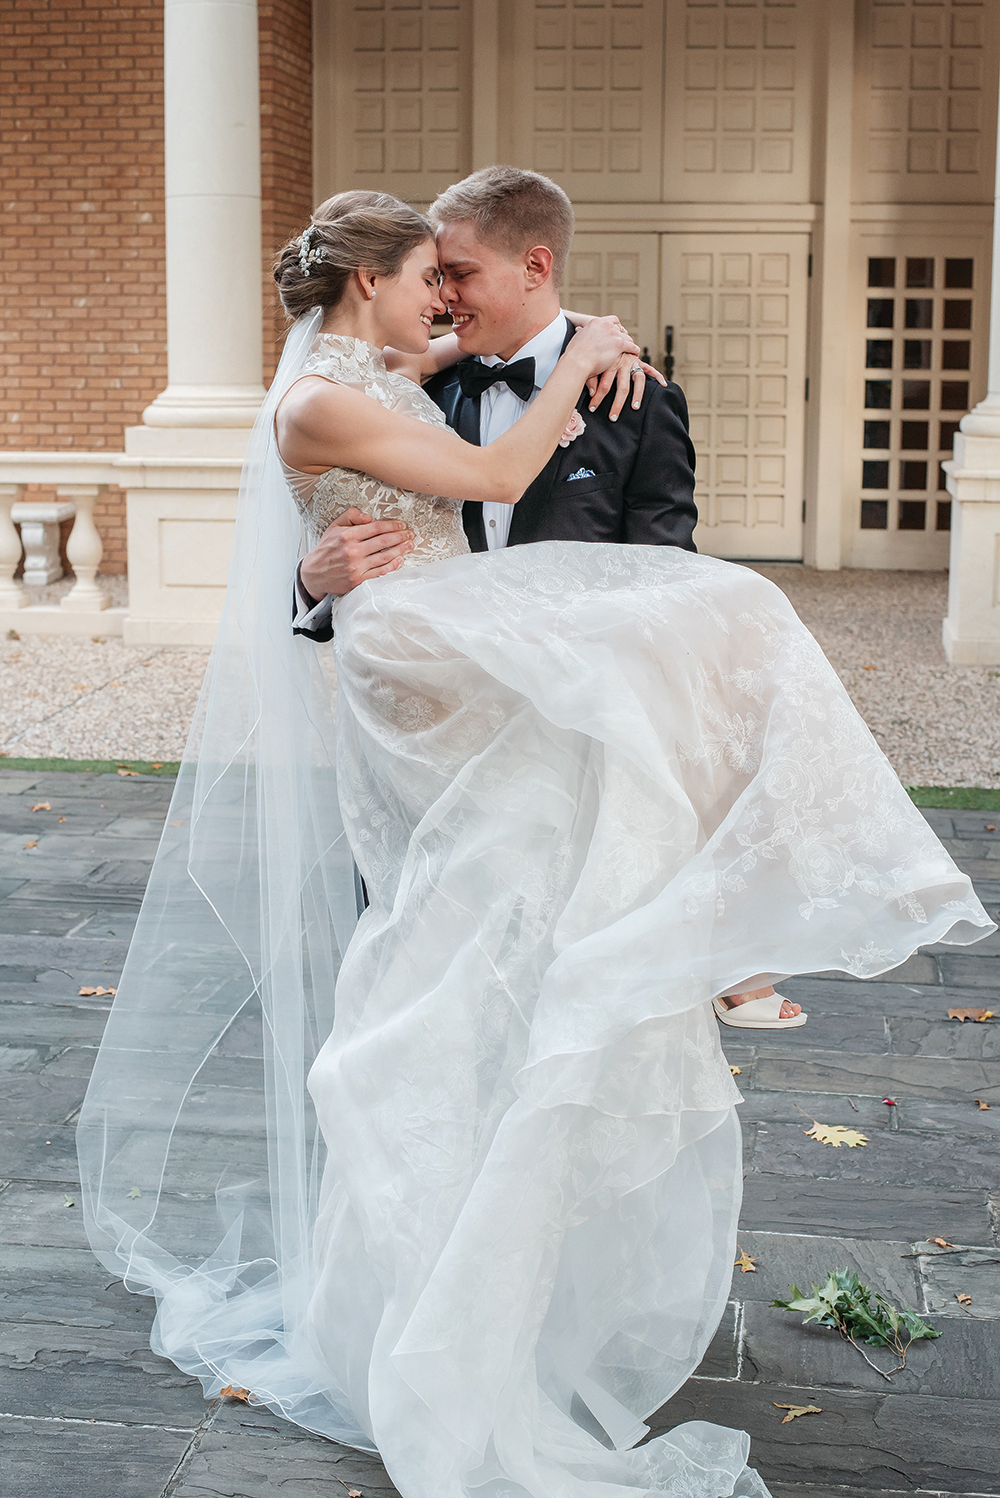 romantic photo - houston wedding